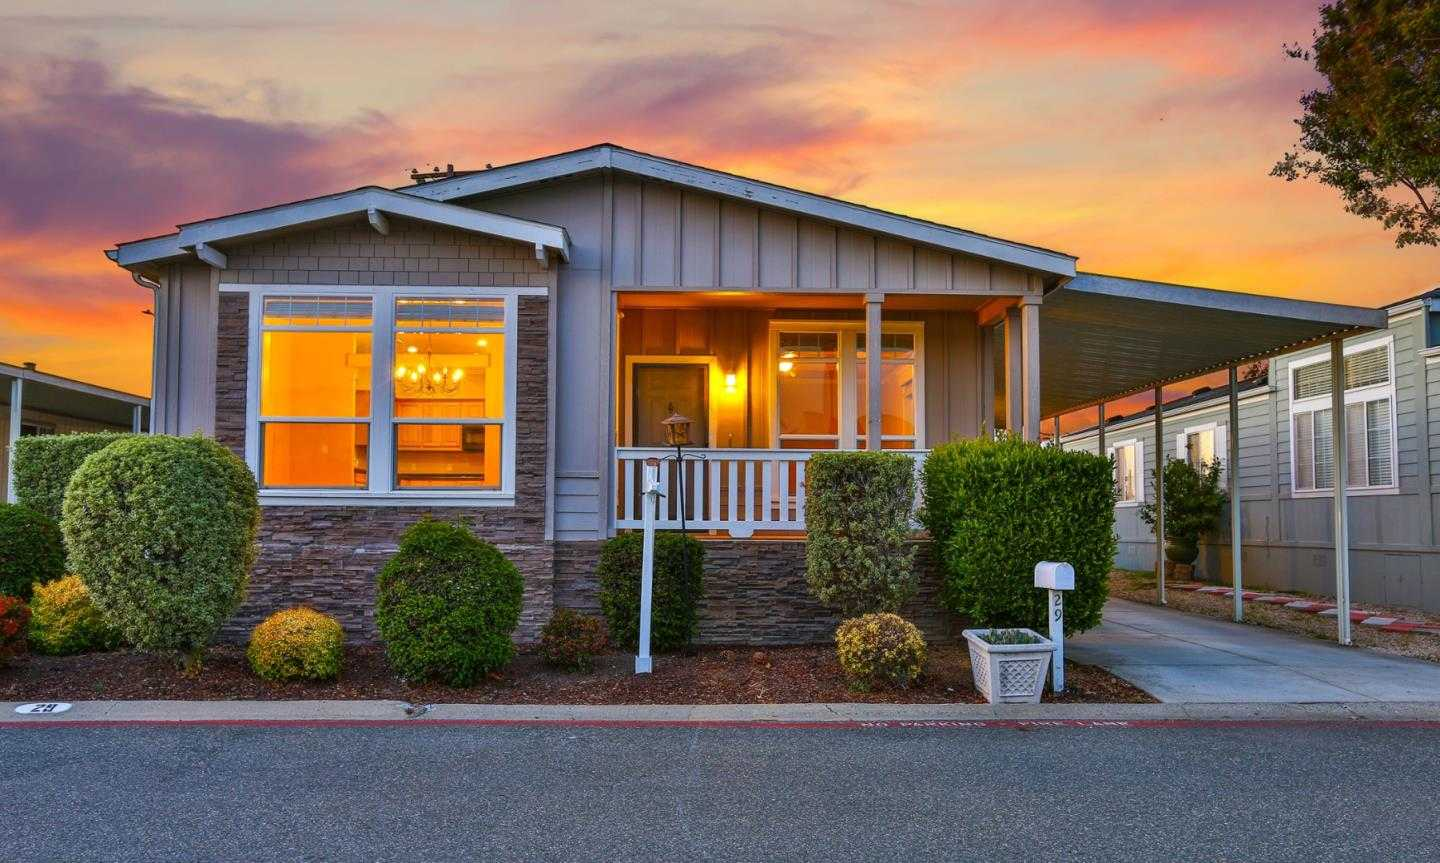 $339,888 - 3Br/2Ba -  for Sale in Sunnyvale